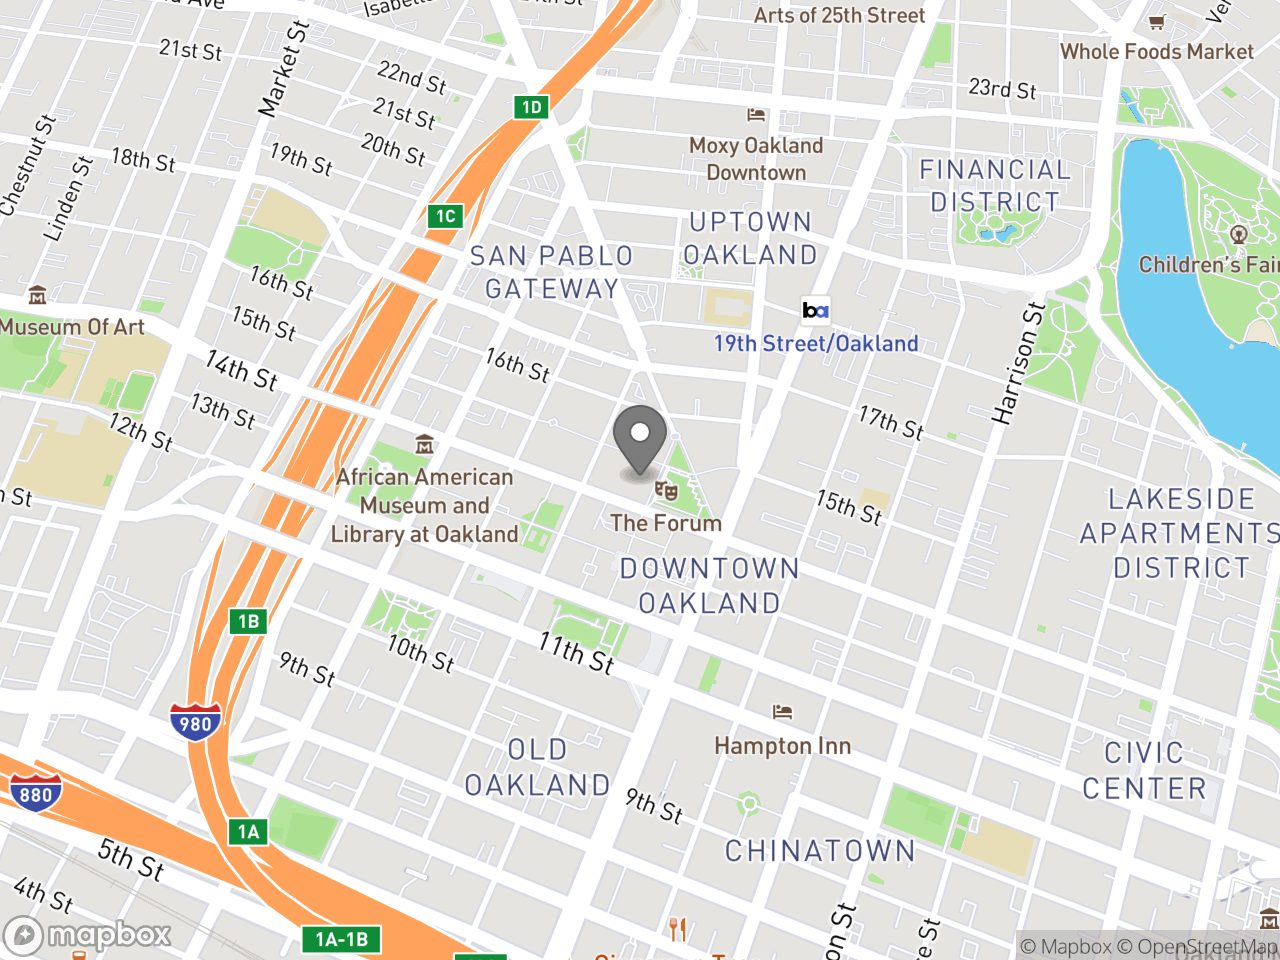 Map image for April 3, 2019 Planning Commission Meeting, located at 1 Frank H Ogawa Plaza in Oakland, CA 94612